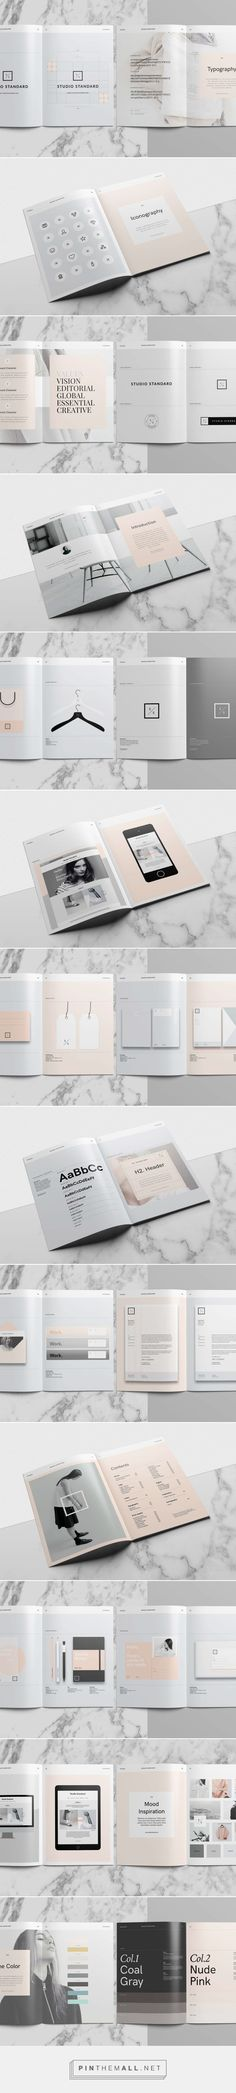 Design guidelines: Studio Standards | Abduzeedo Design Inspiration - created…